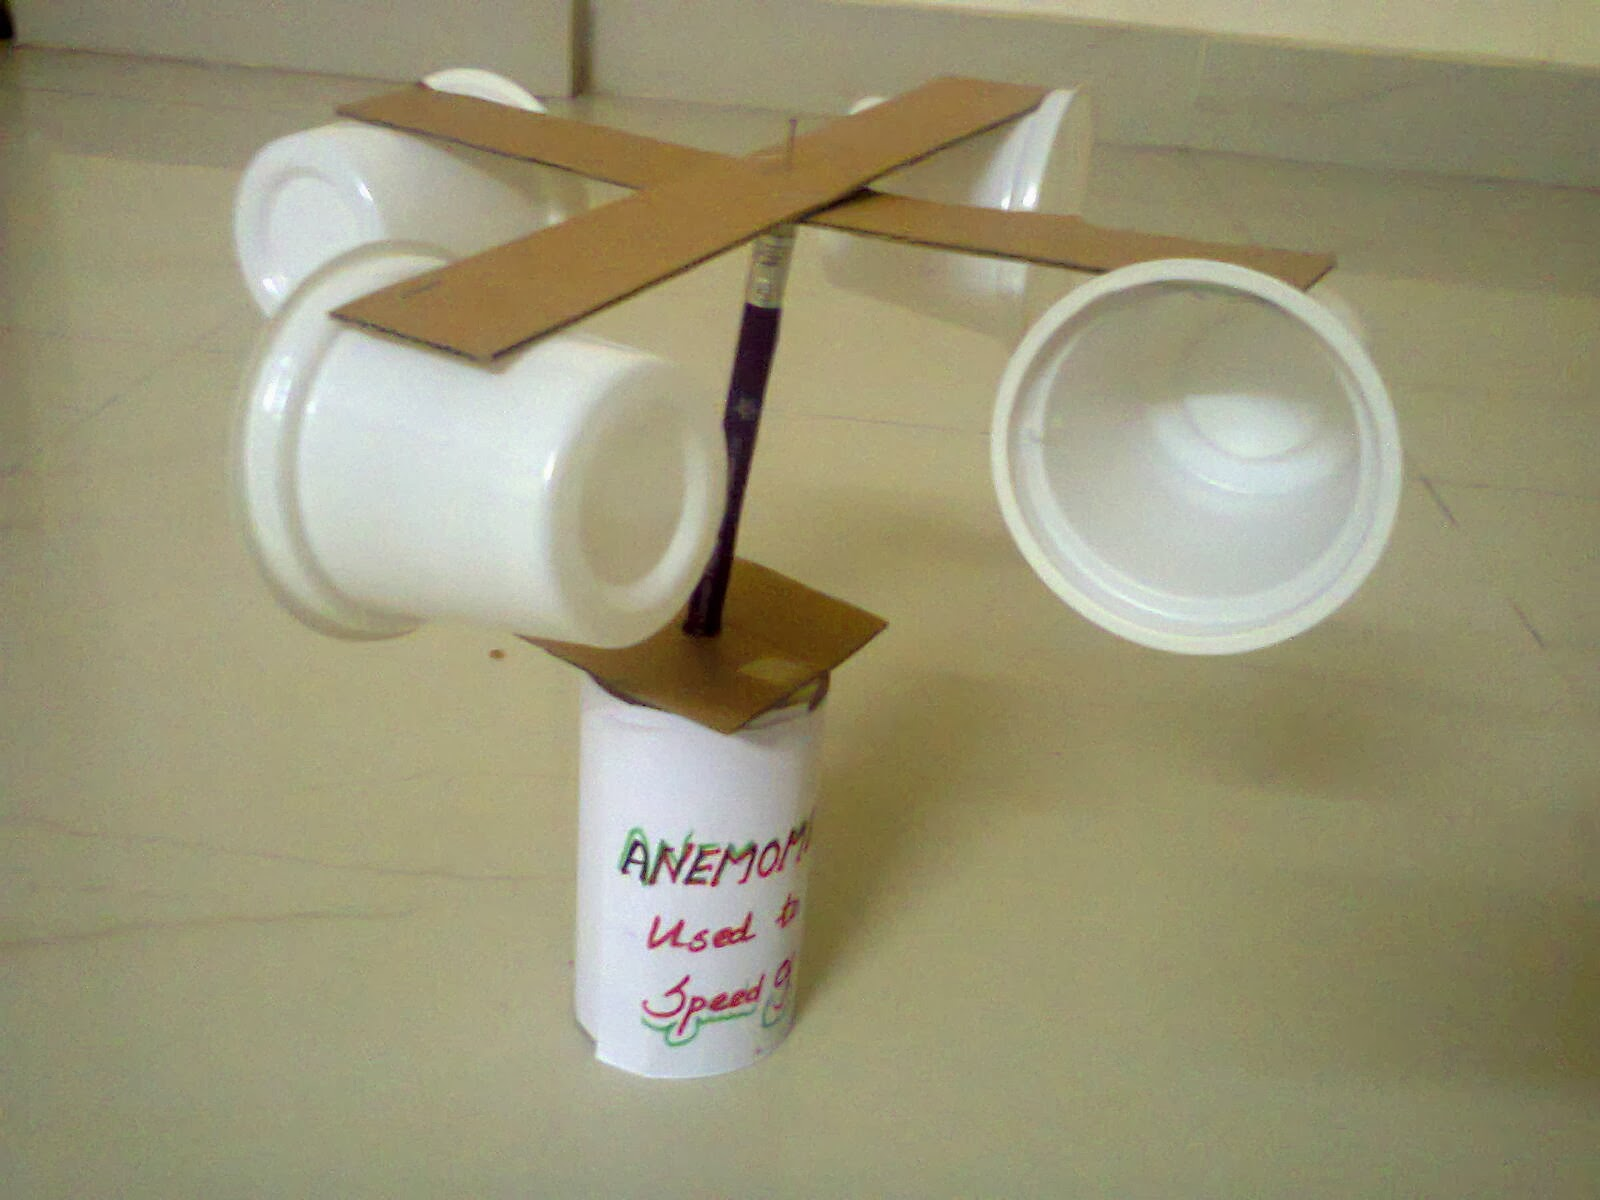 Creative of rainy anemometer for Project of best out of waste